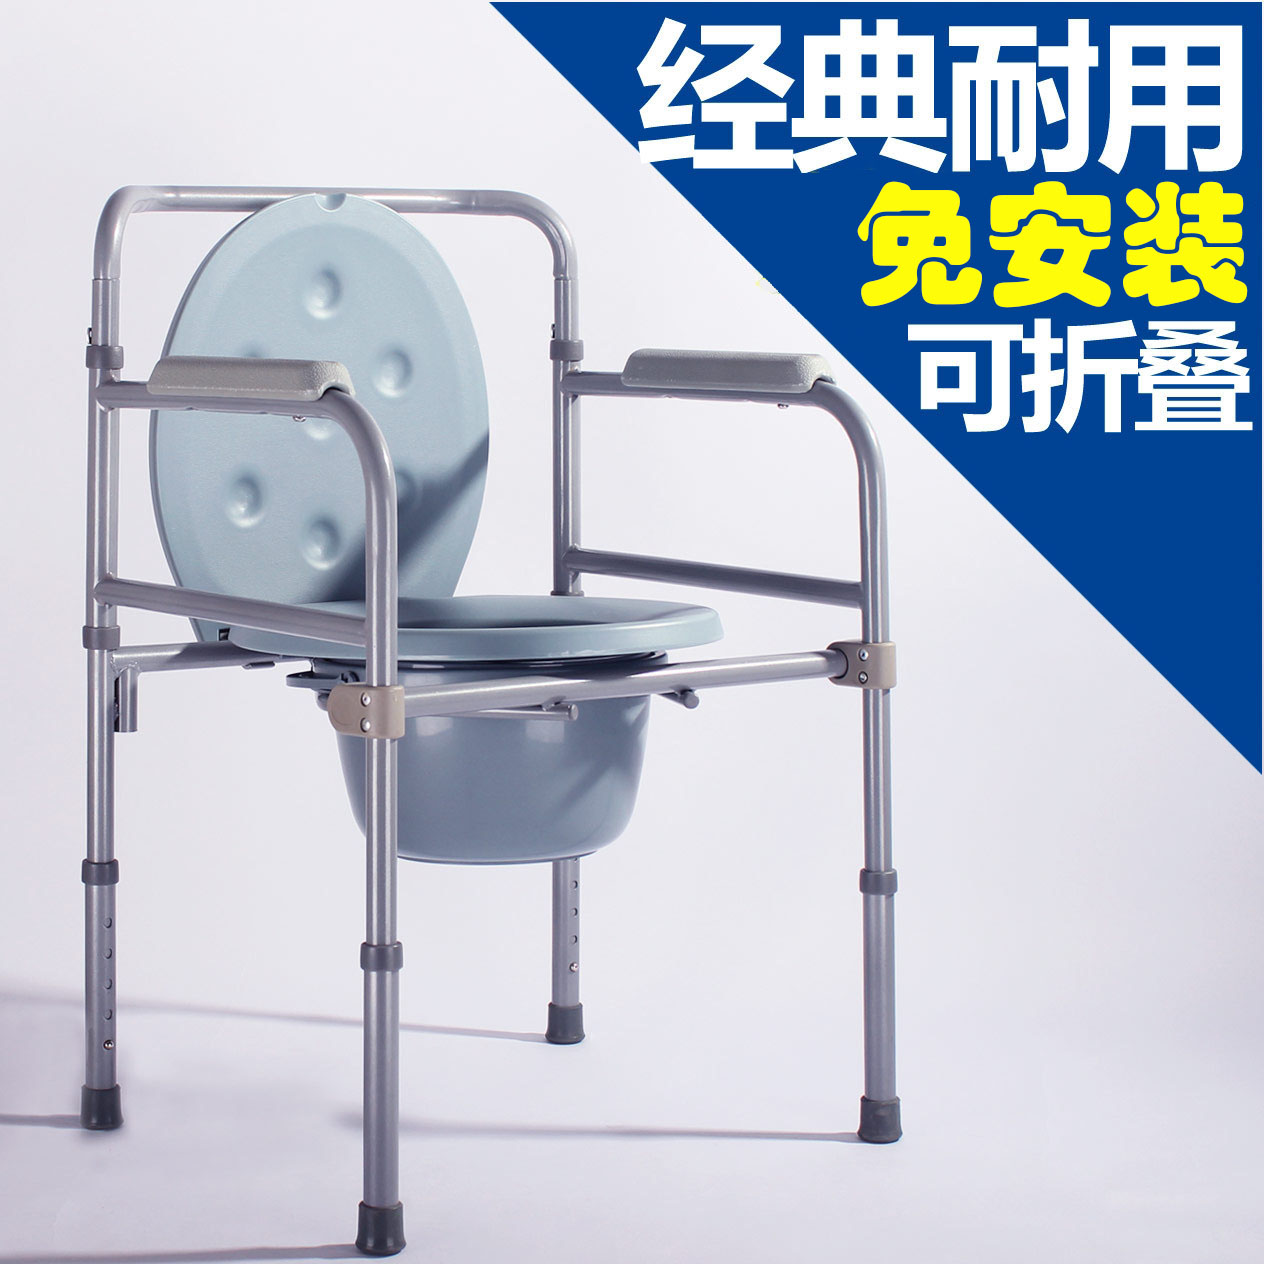 USD 39.92] Elderly potty chairs for disabled stool chair Toilet ...